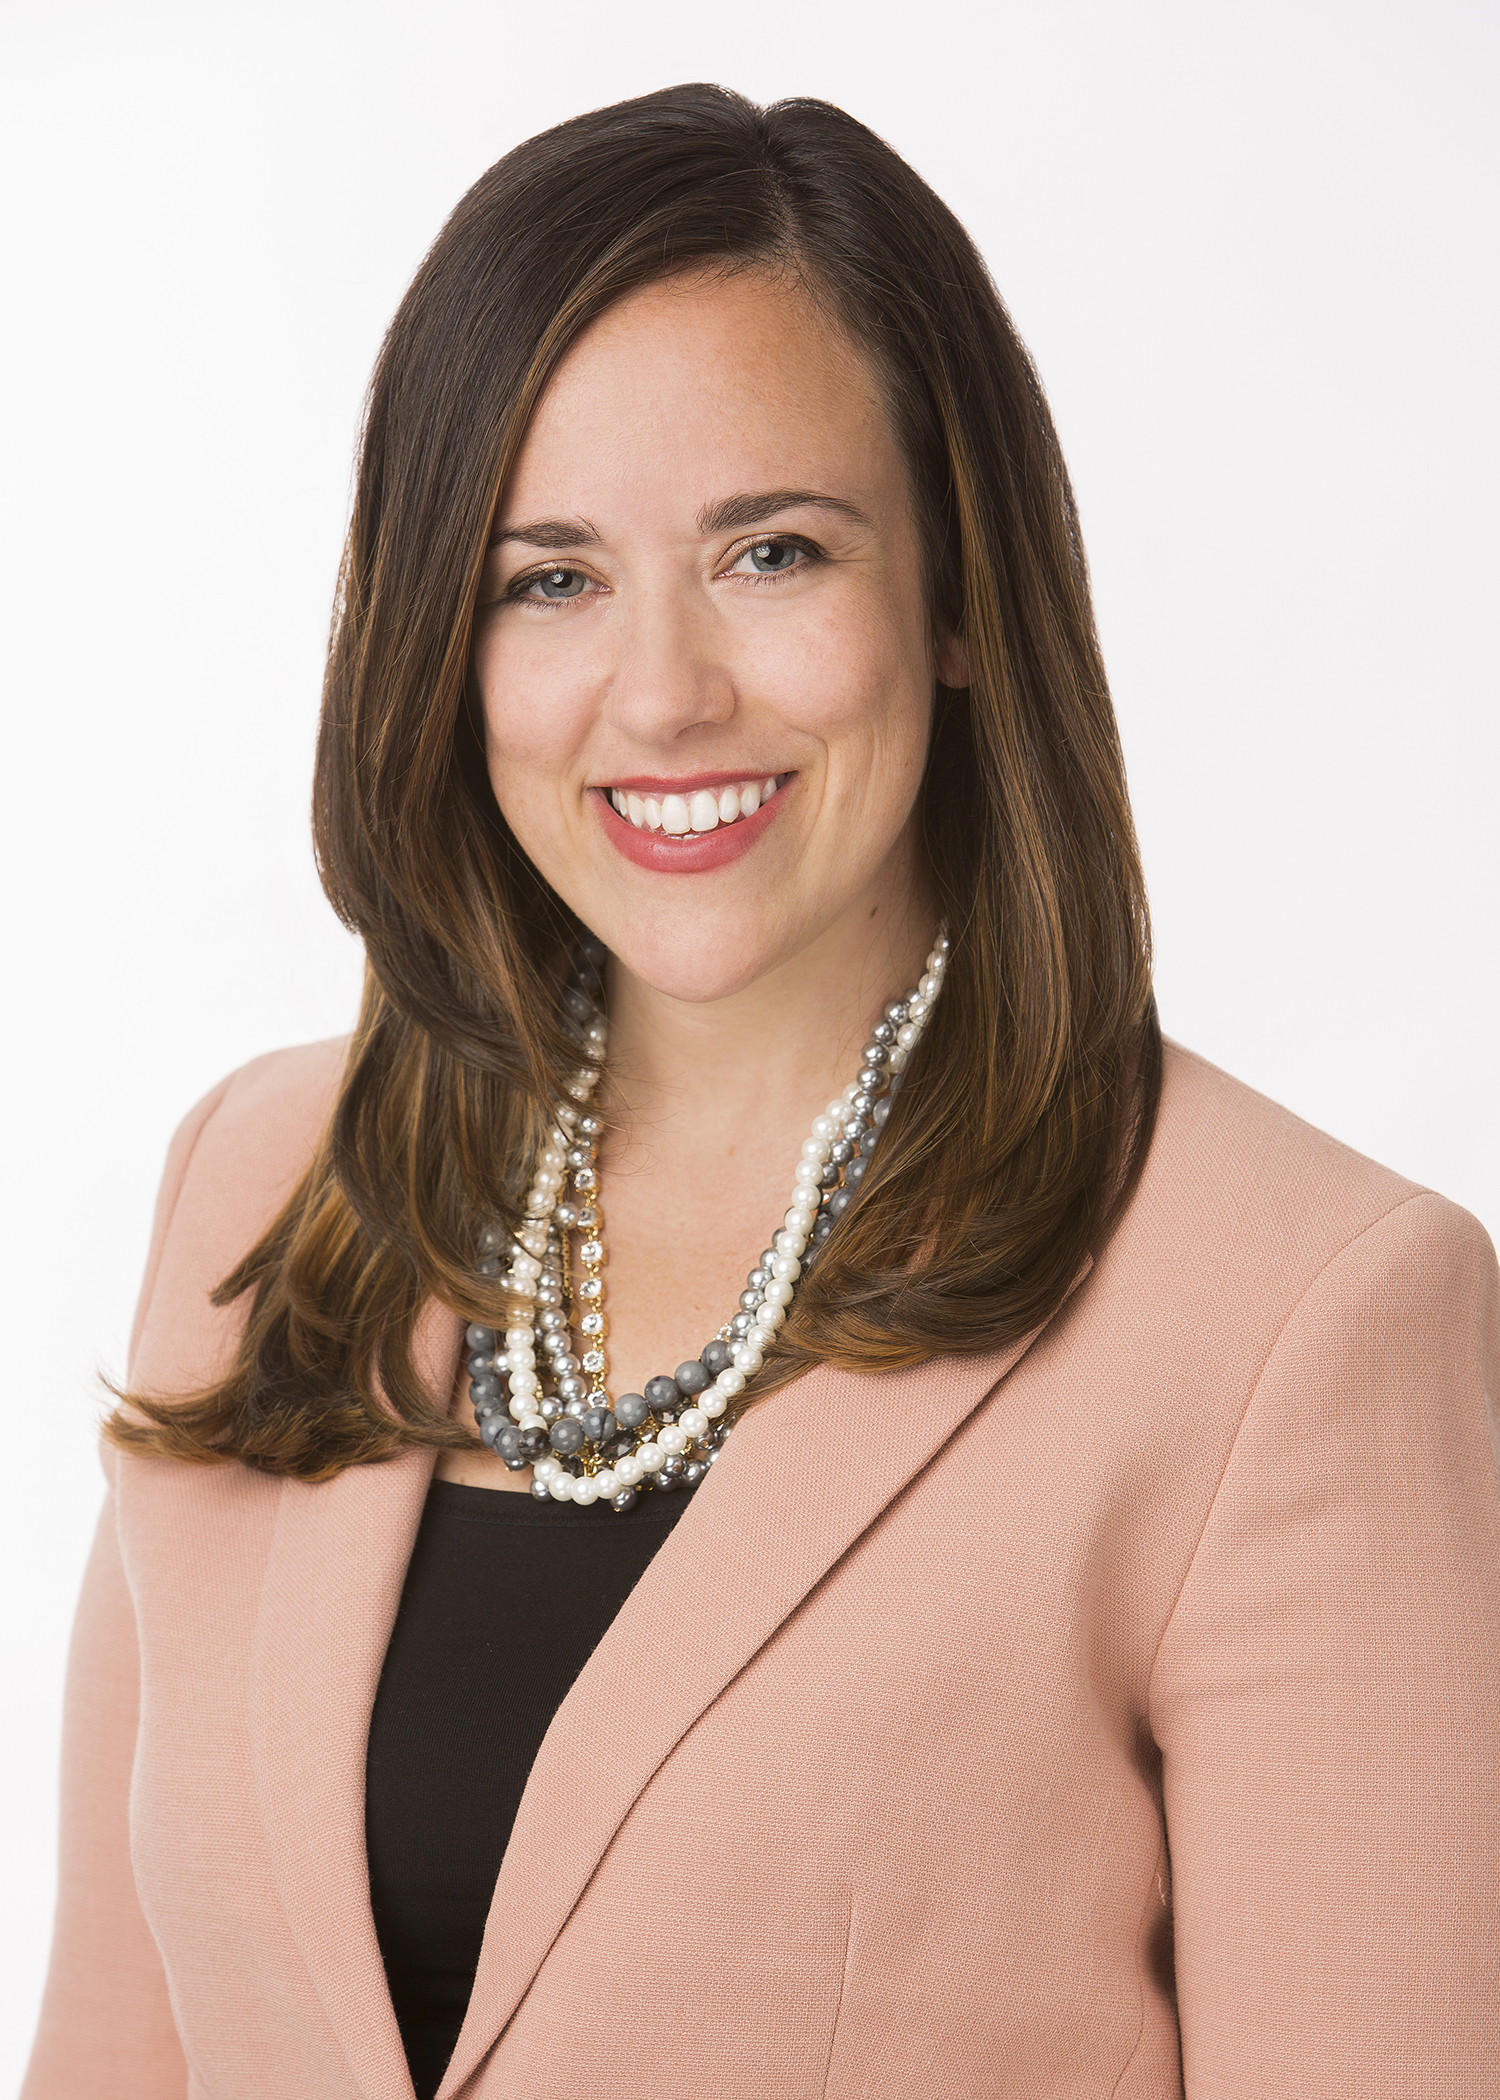 Molly Determan, COO, Energy Workforce & Technology Council